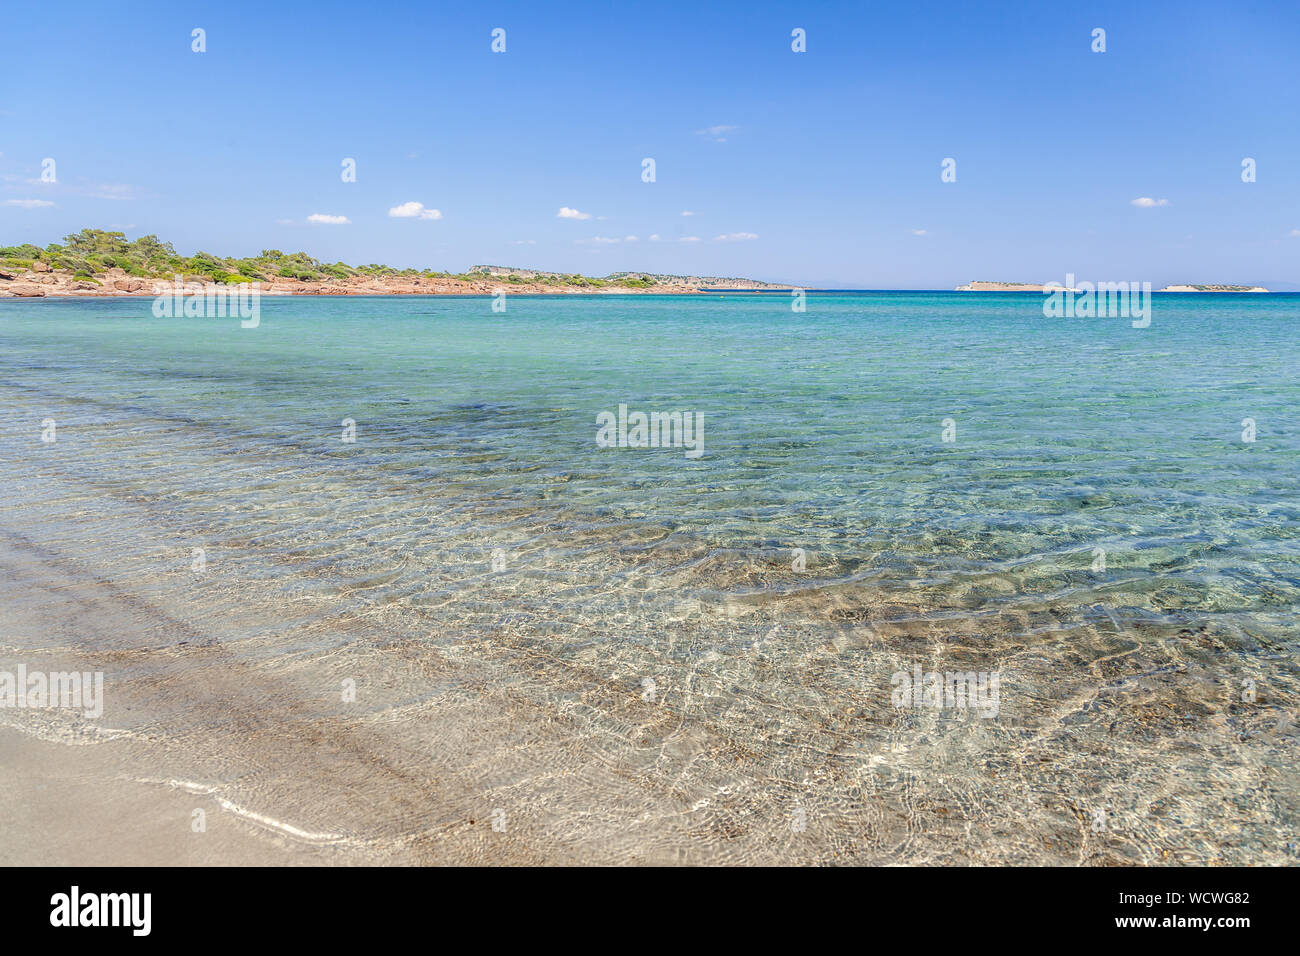 Lesvos island, the beach of Chryssi Ammos (Golden Sand), near the village of Mantamados, in northern Lesvos. Stock Photo